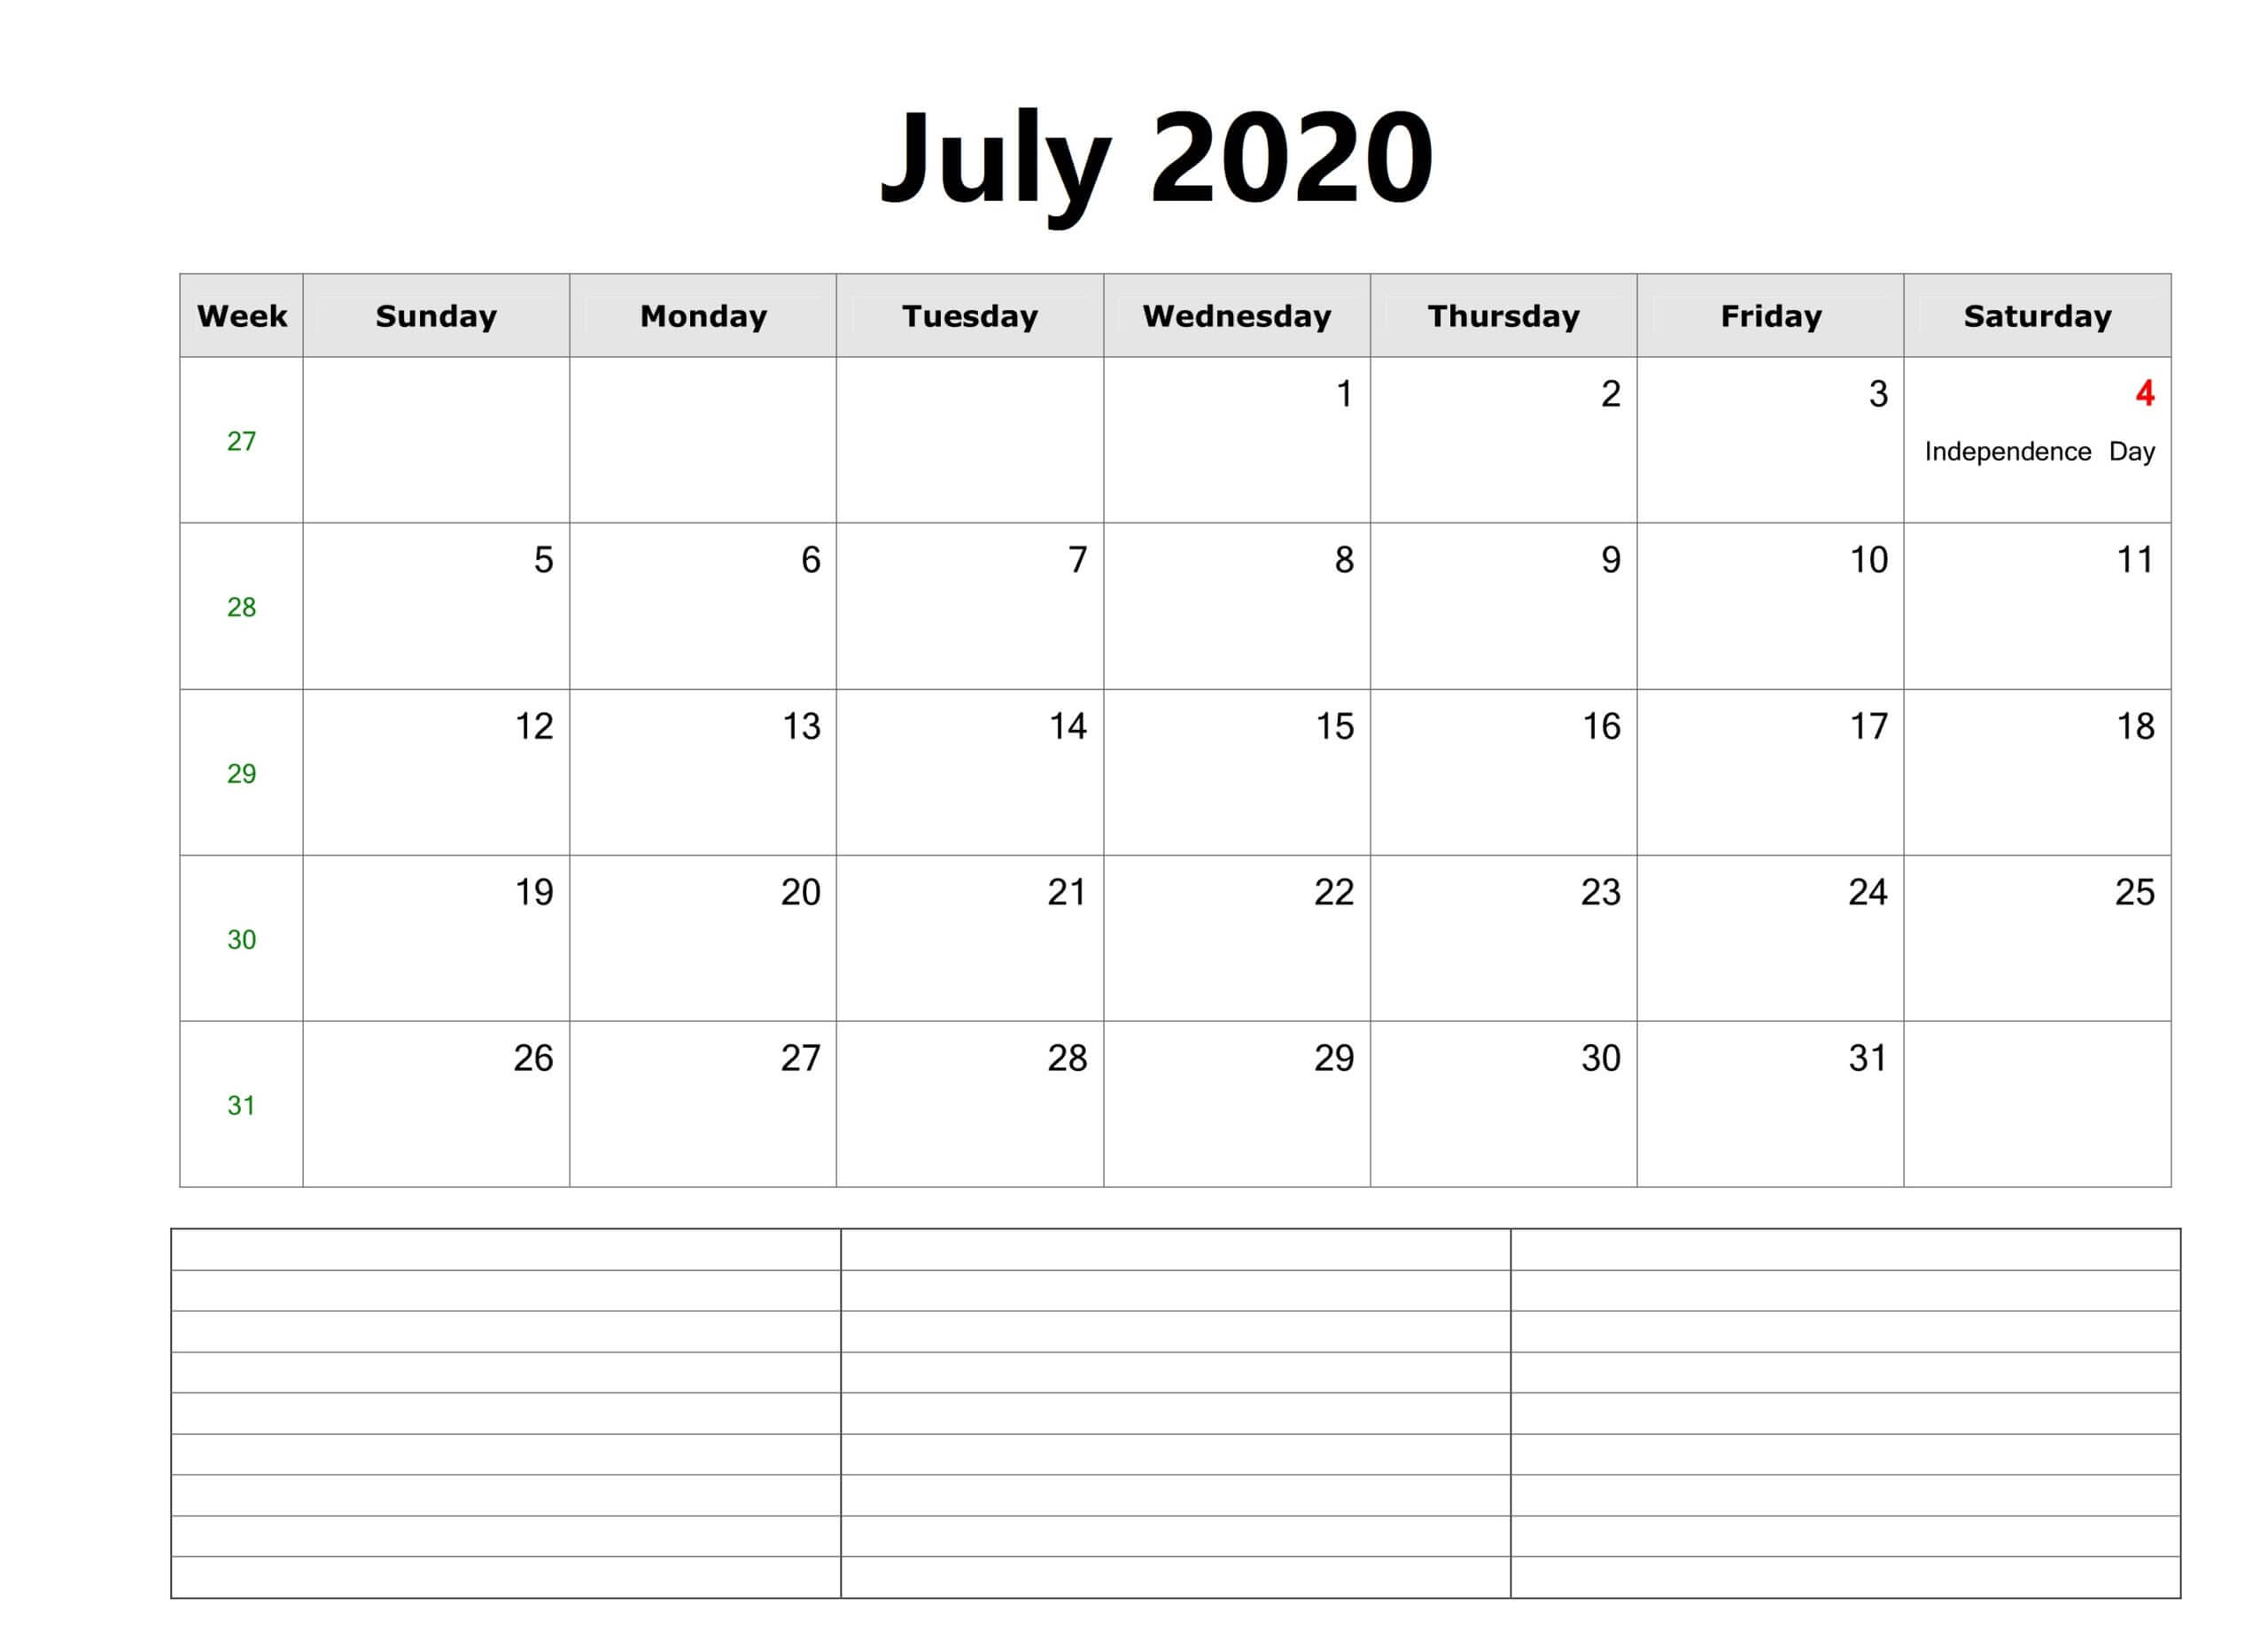 July 2020 Calendar With Holidays free